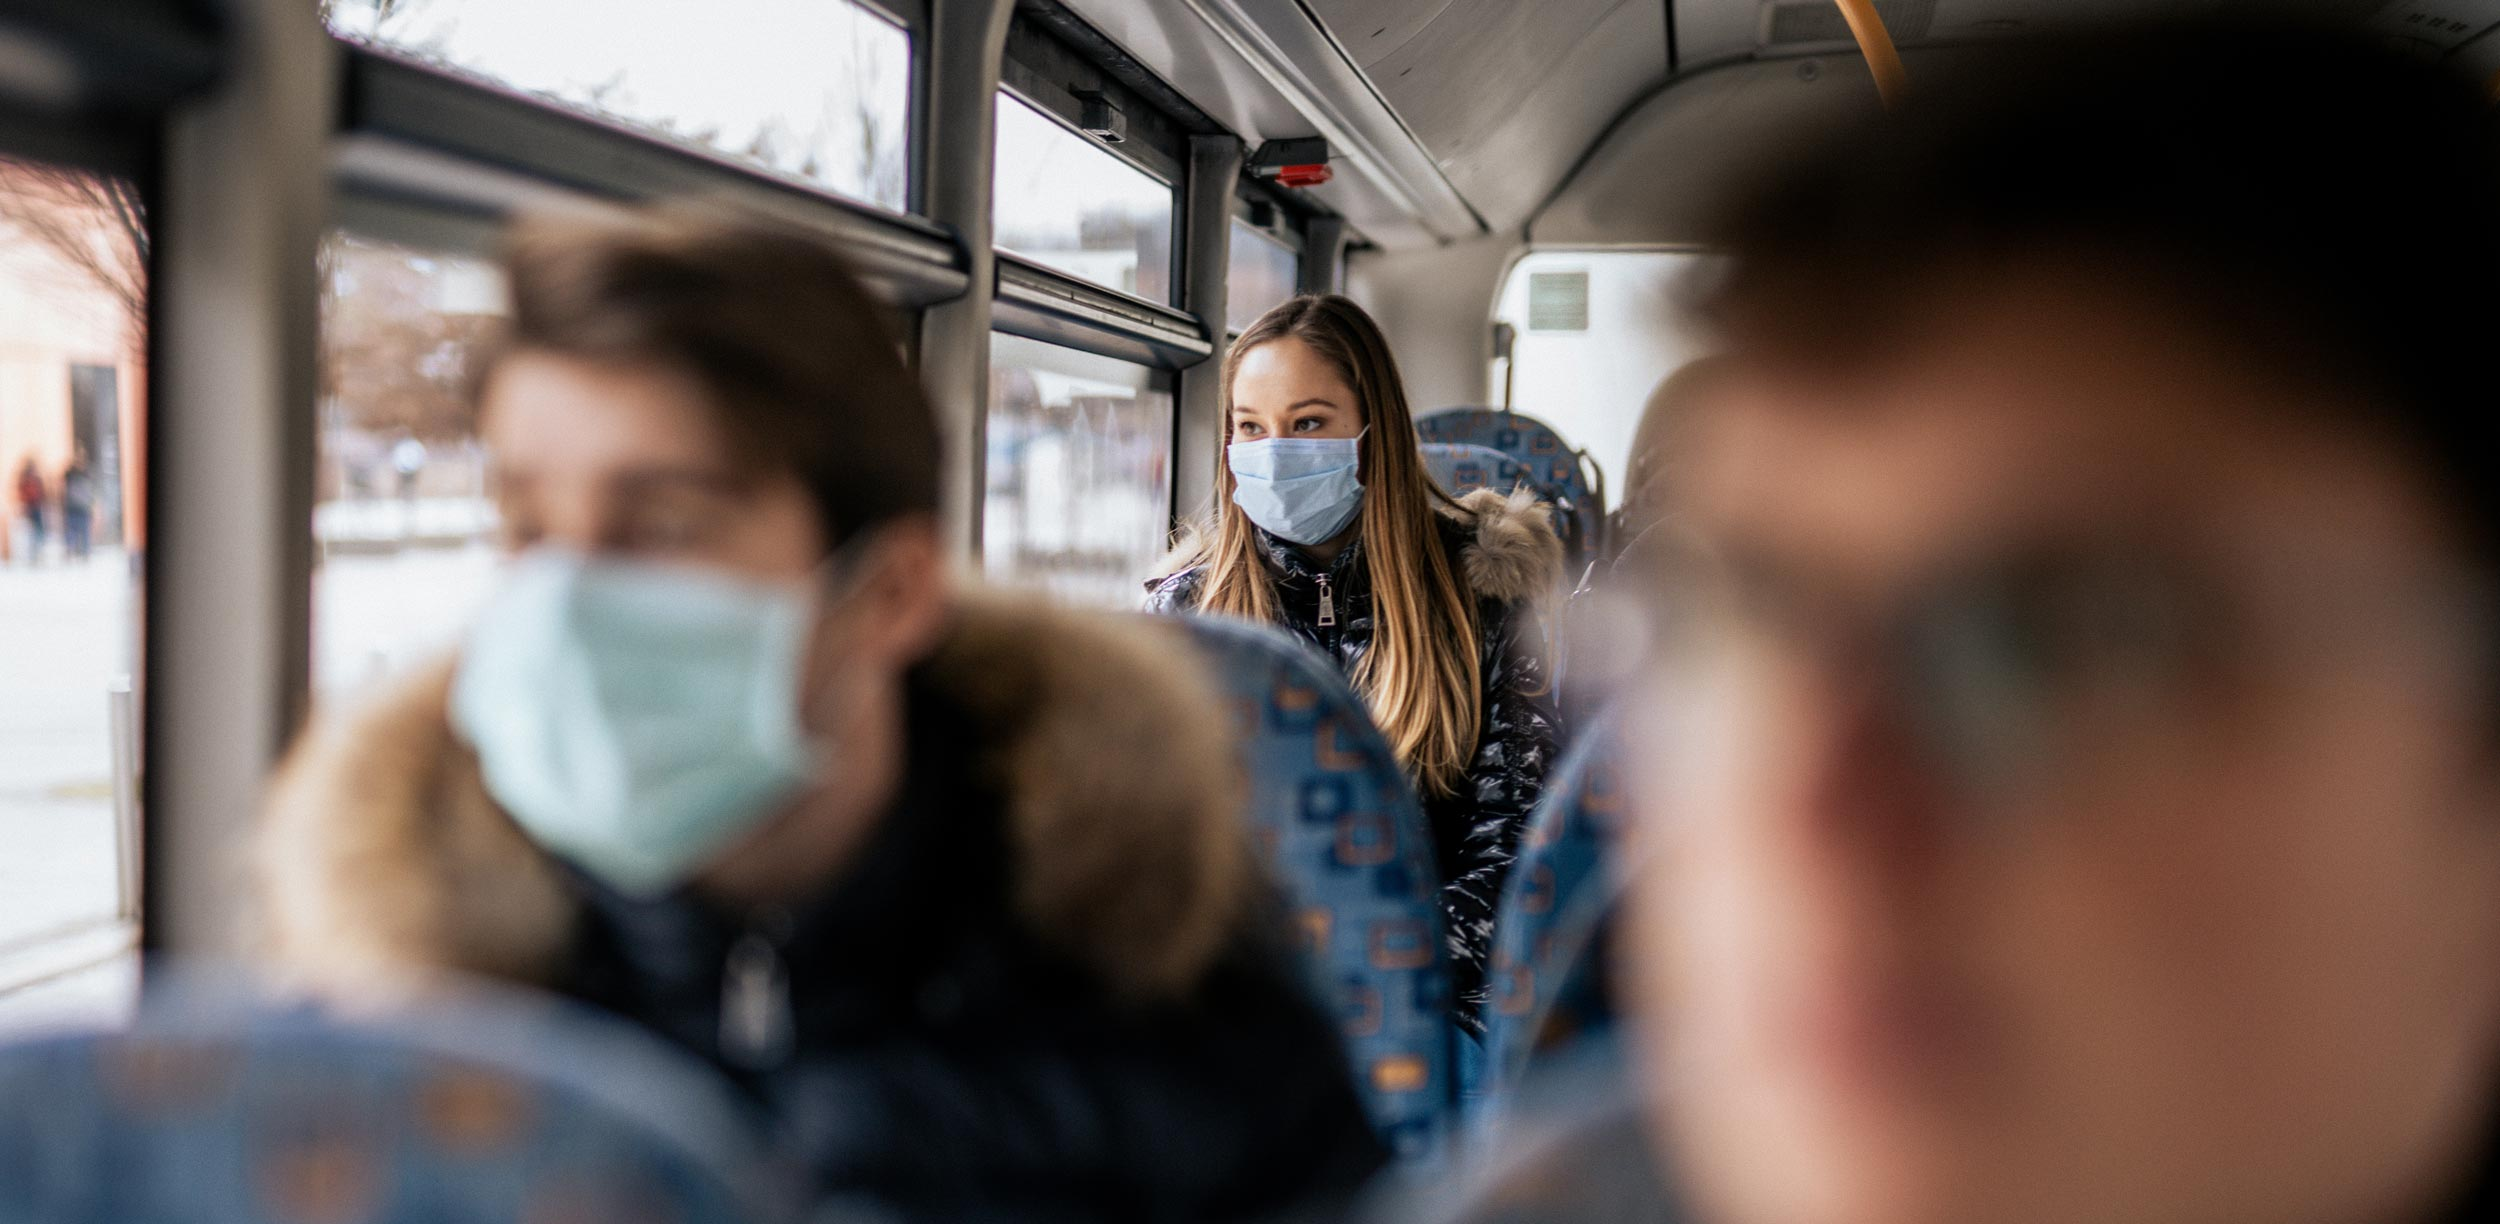 Cleaners' inability to take sick leave poses a COVID-19 safety risk